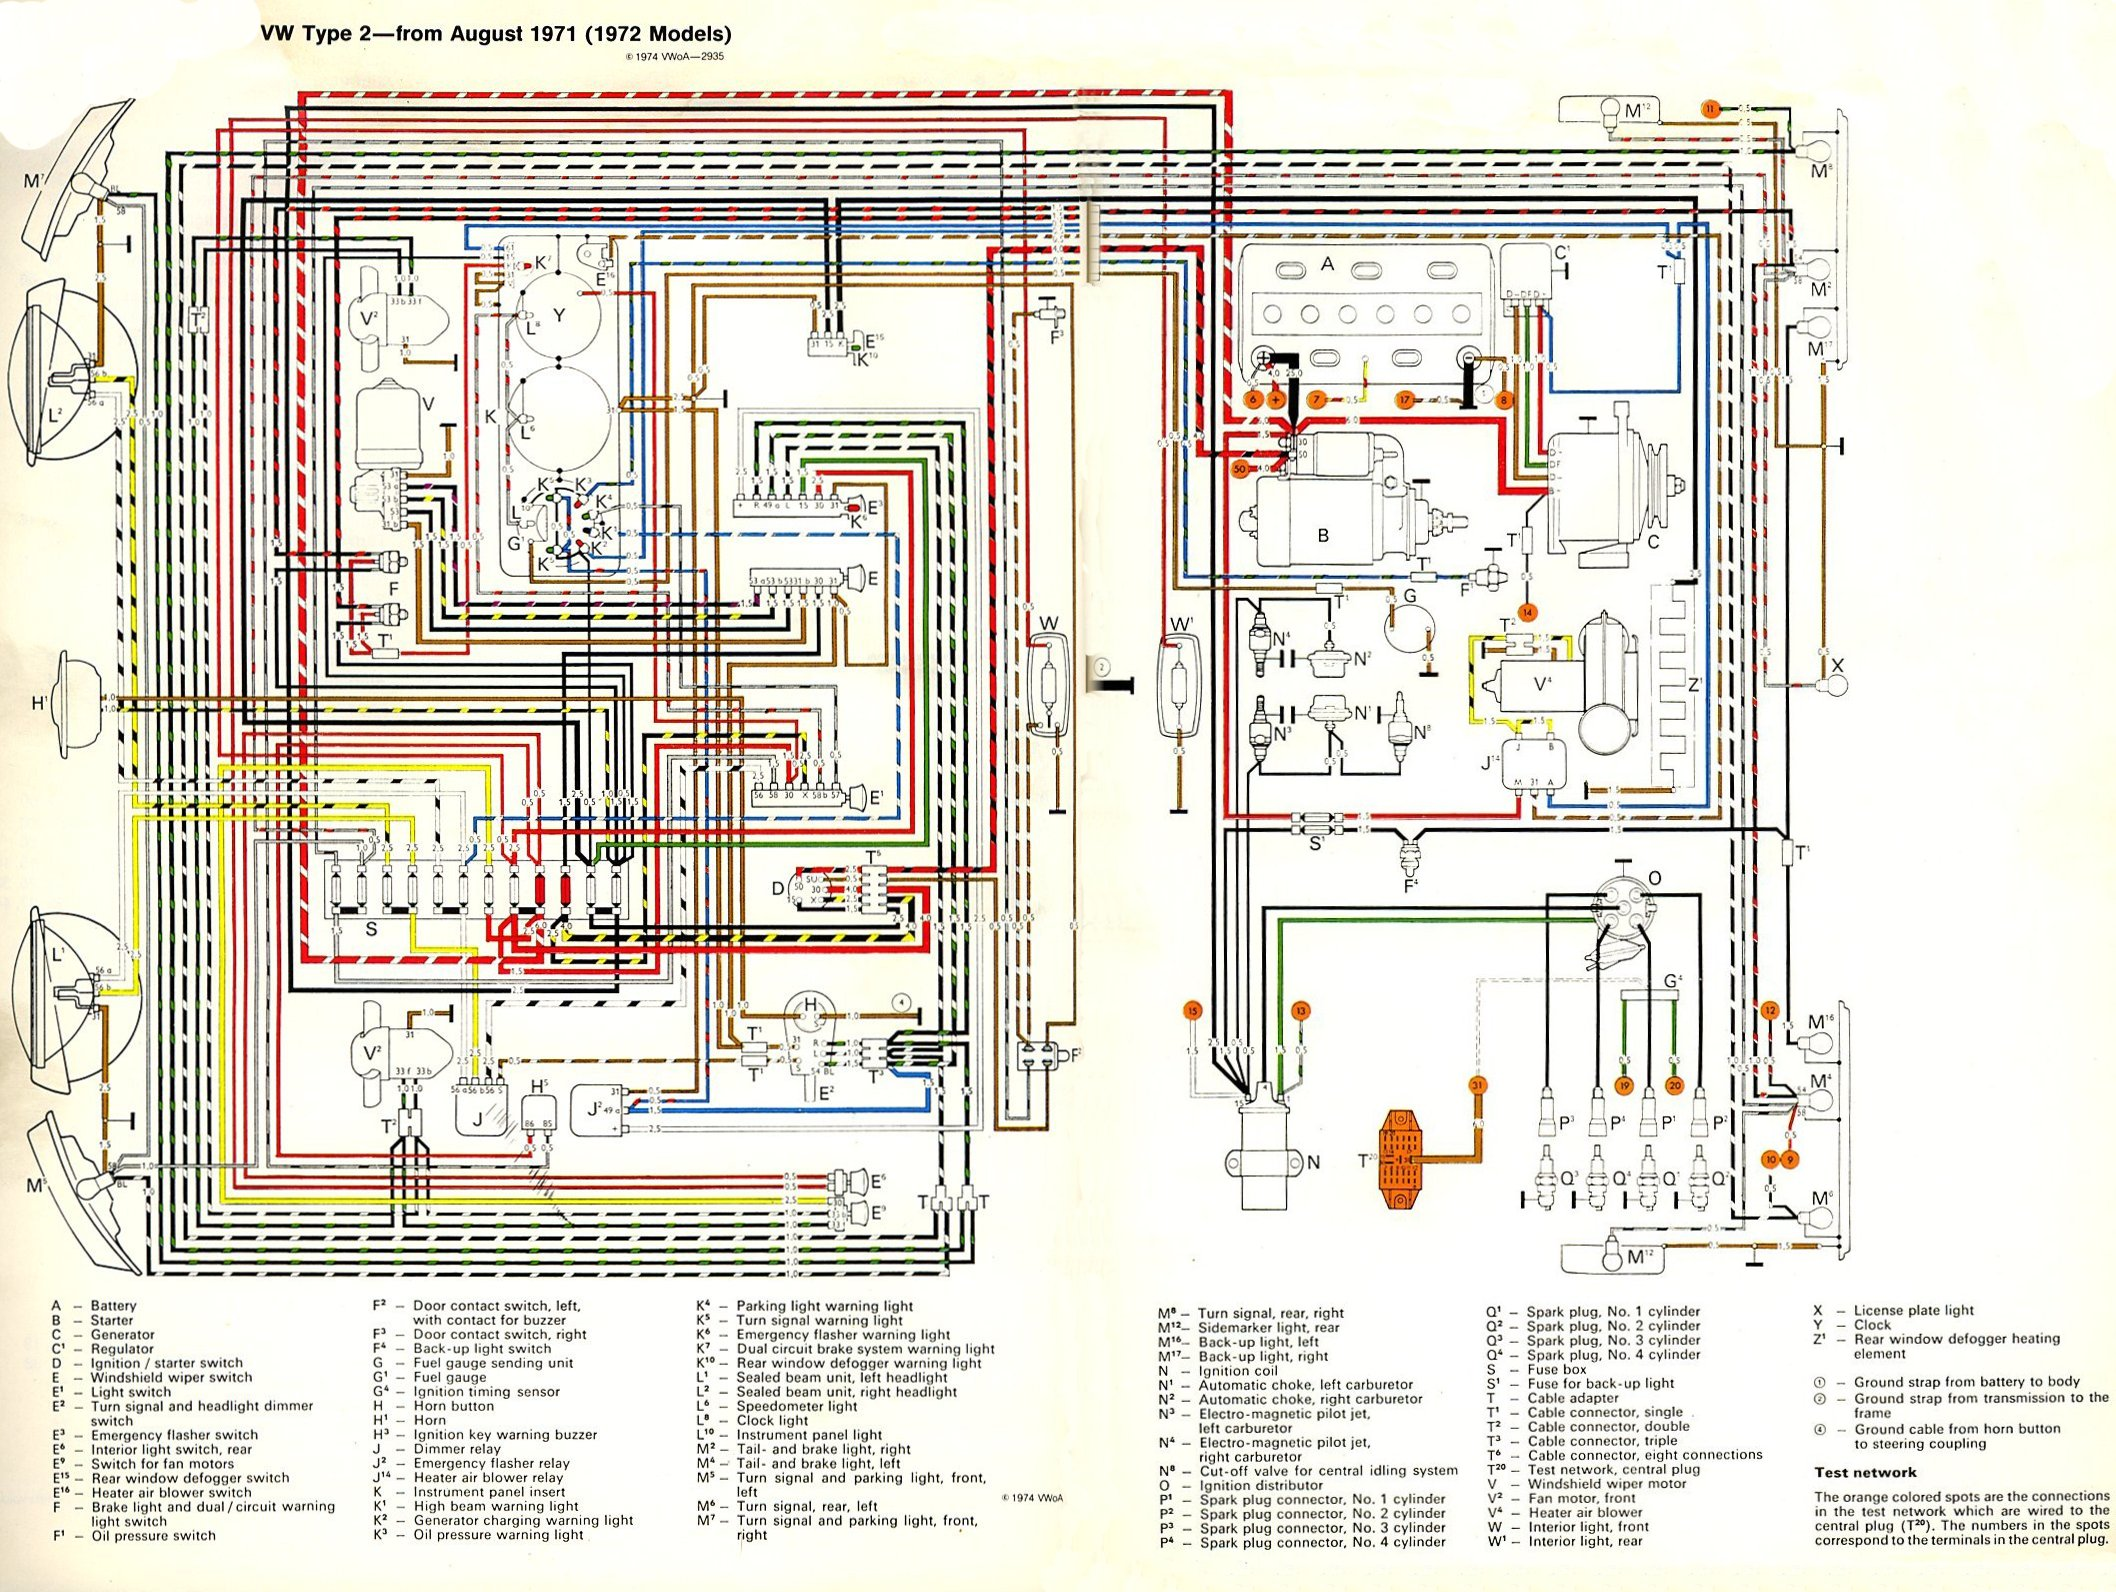 bus_1972_wiring bus_1972_wiring jpg (2116�1592) wire pinterest kombi camper vw t4 fuse box wiring diagram at edmiracle.co